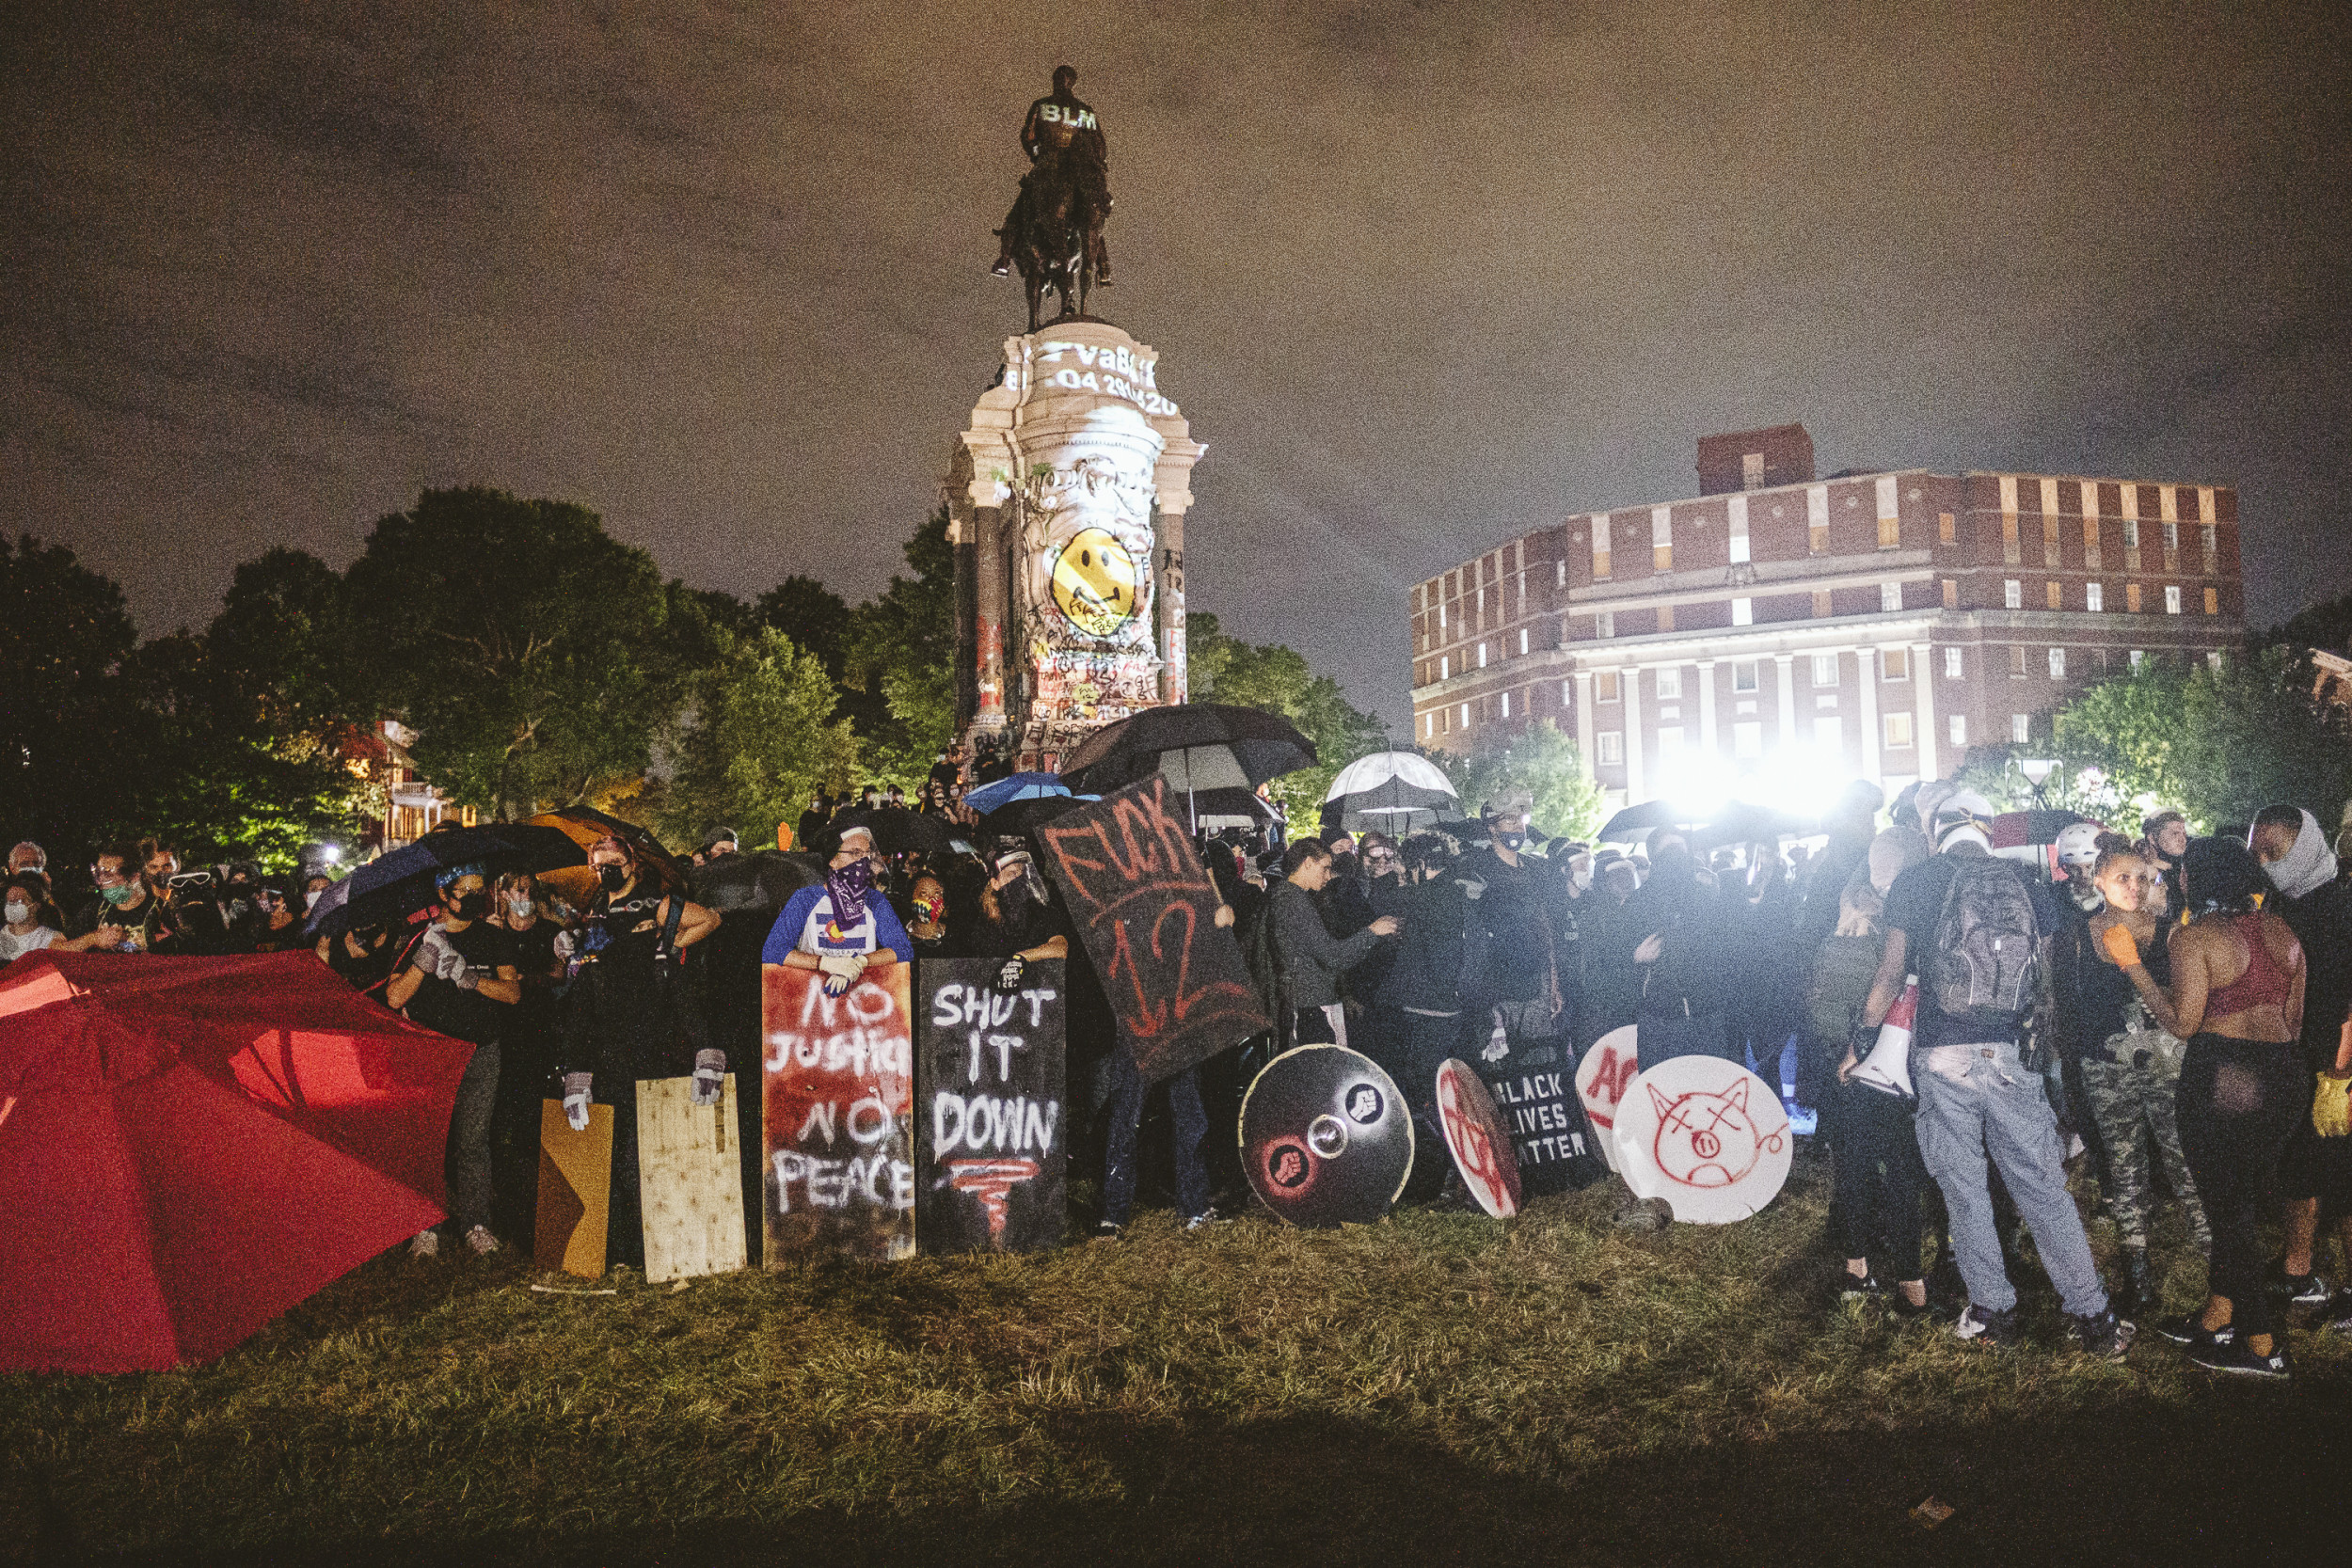 Where have Confederate statutes been removed? Virginia mayor latest to issue order